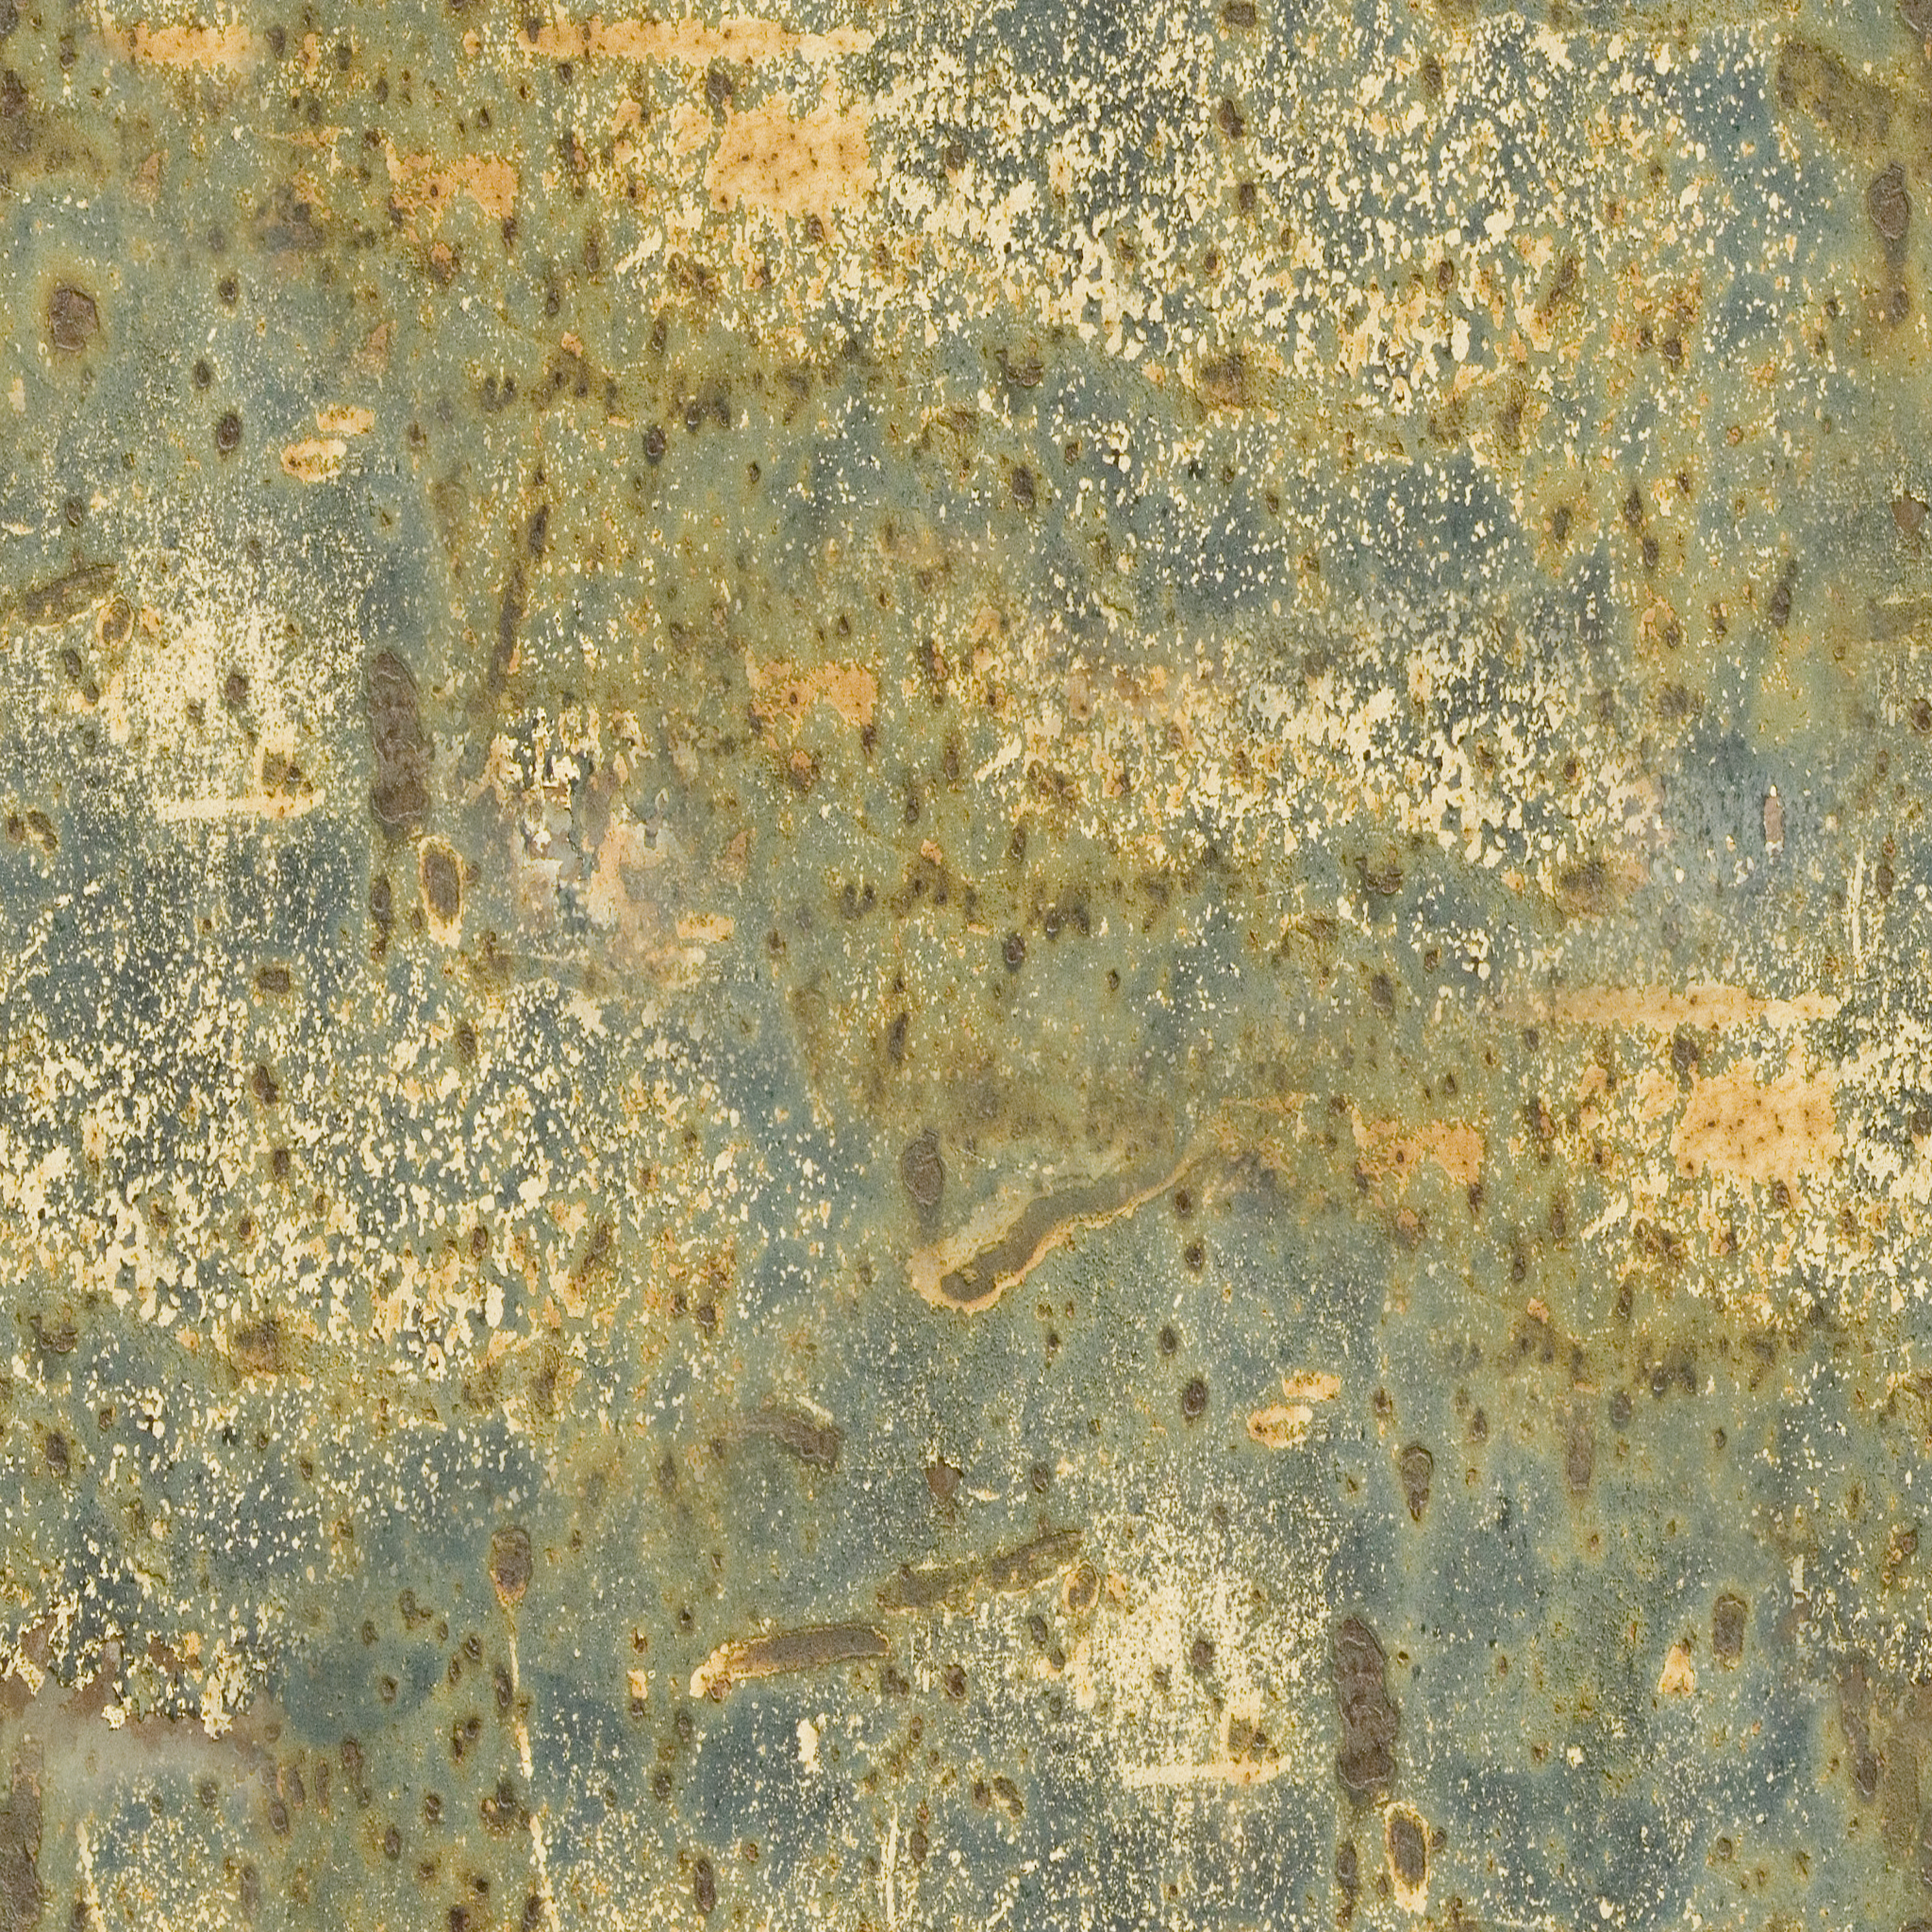 Blue Patchy Rust.jpg